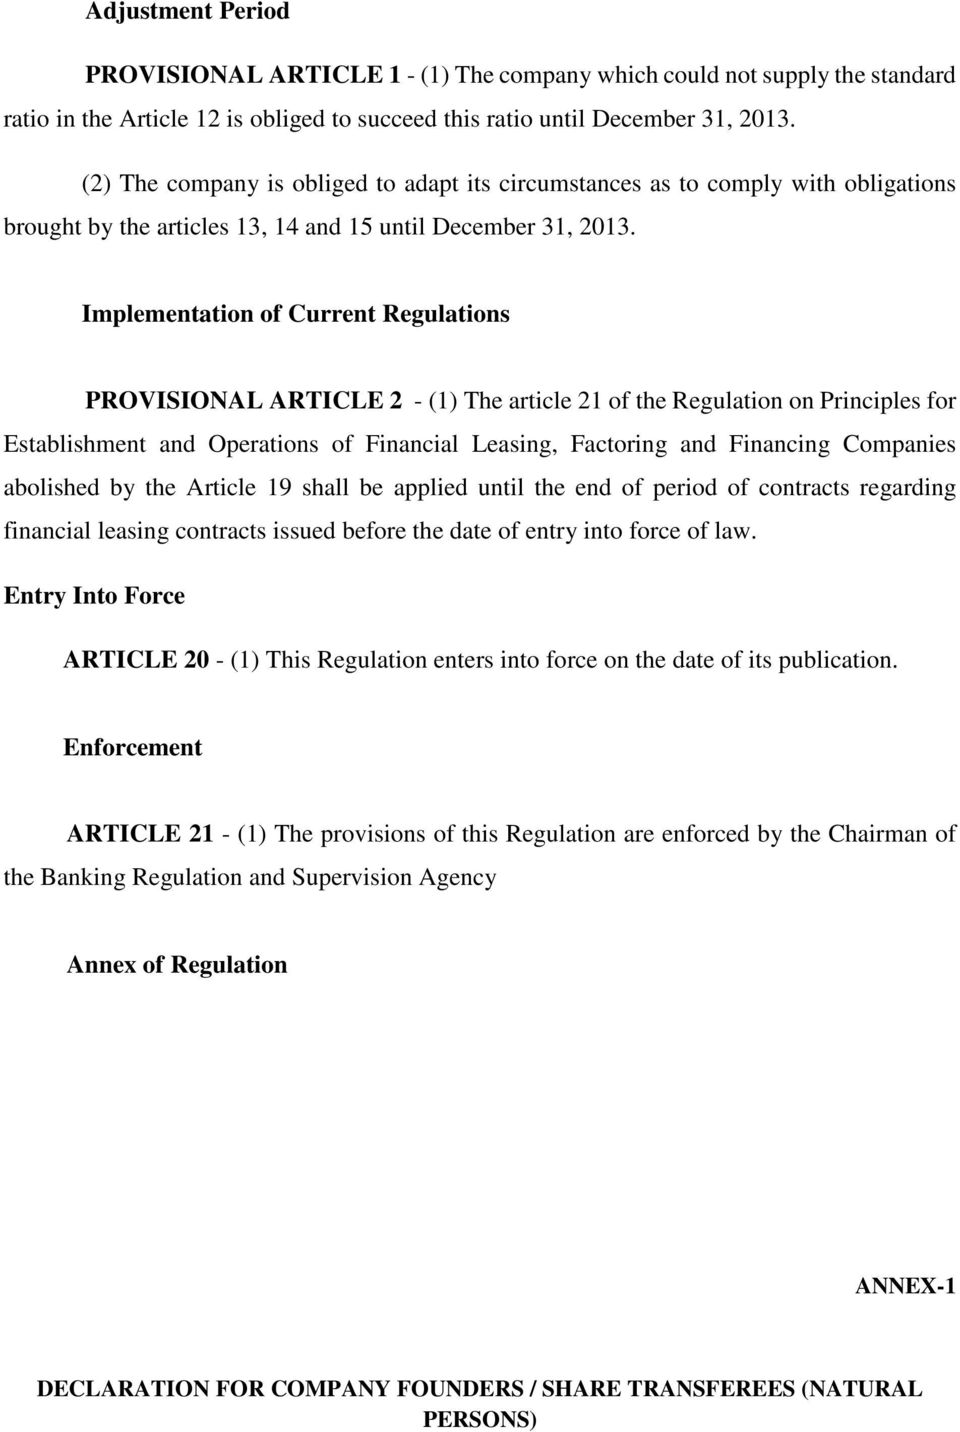 Implementation of Current Regulations PROVISIONAL ARTICLE 2 - (1) The article 21 of the Regulation on Principles for Establishment and Operations of Financial Leasing, Factoring and Financing